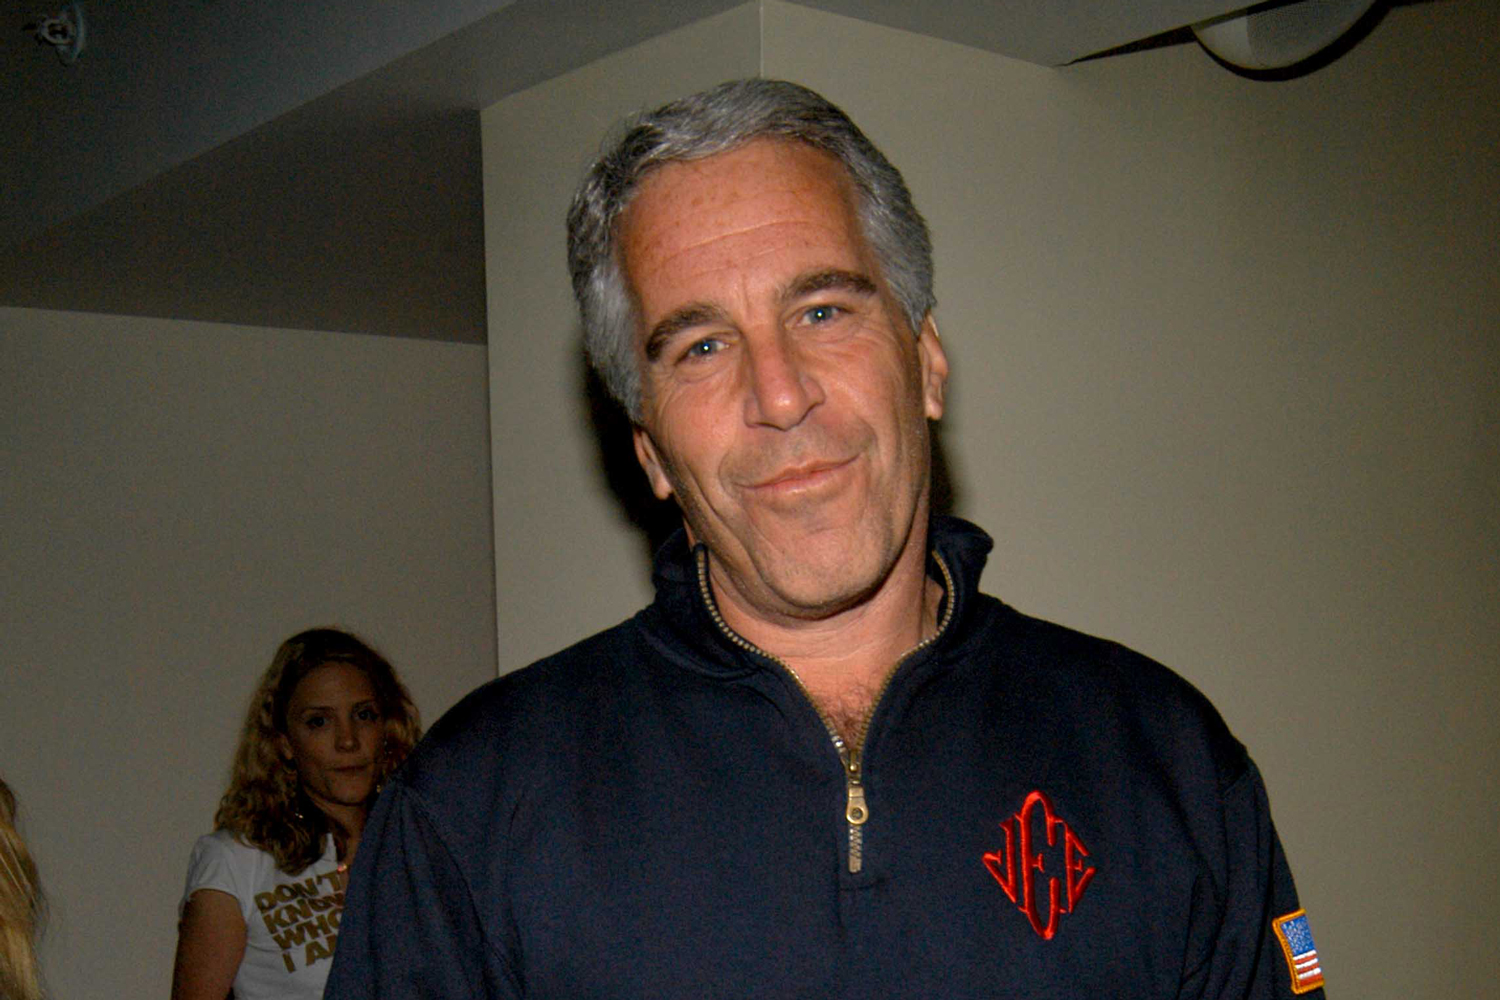 Jeffrey Epstein: Unsealed Indictment Details Sex Trafficking Charges